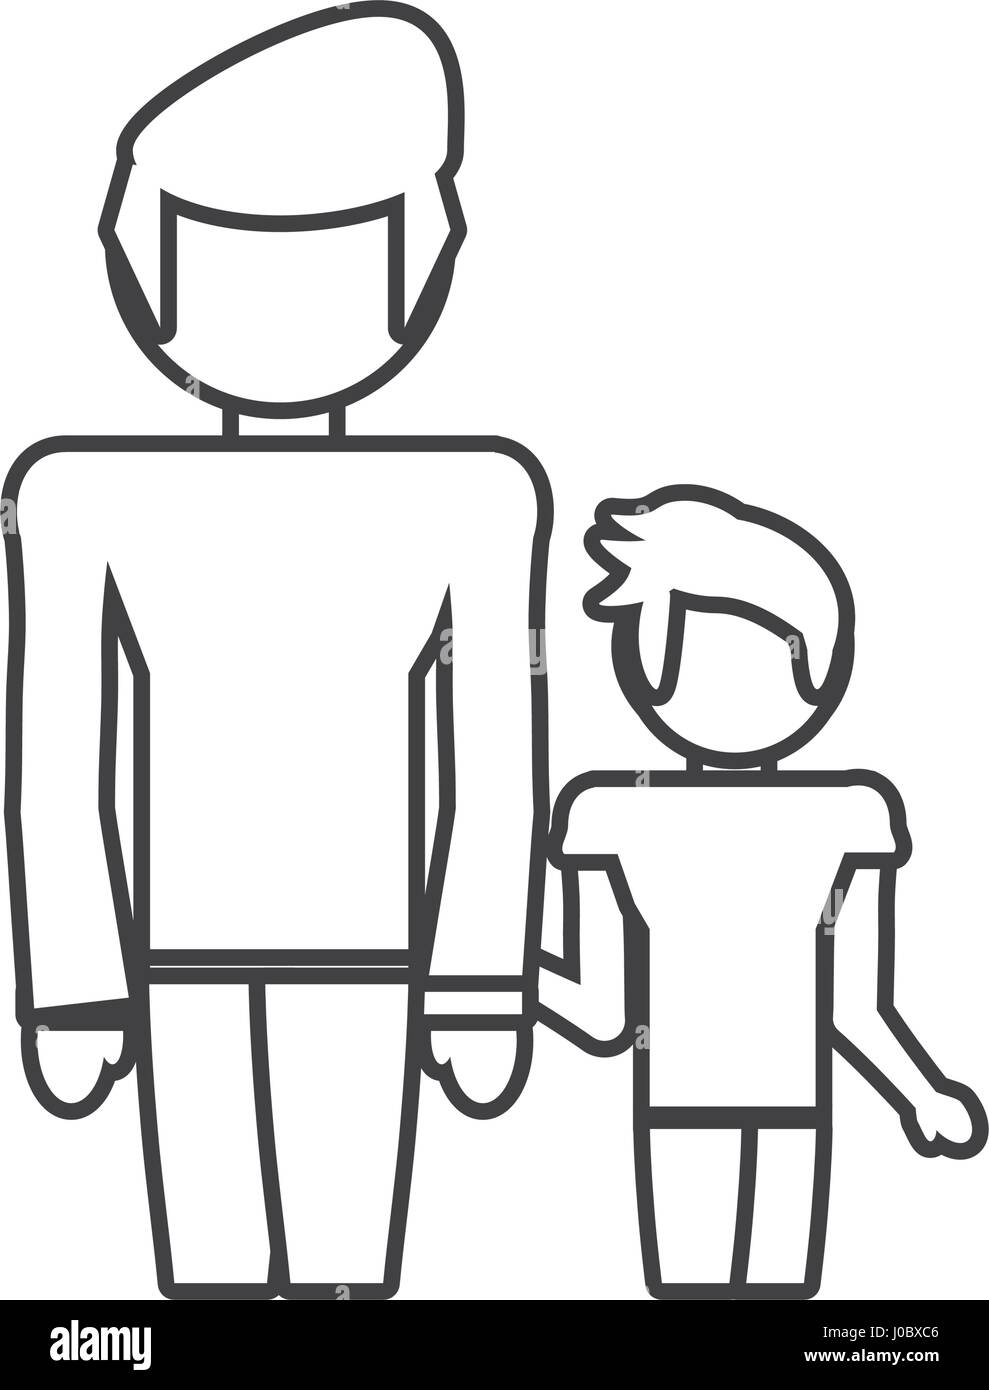 dad and son style outline - Stock Image